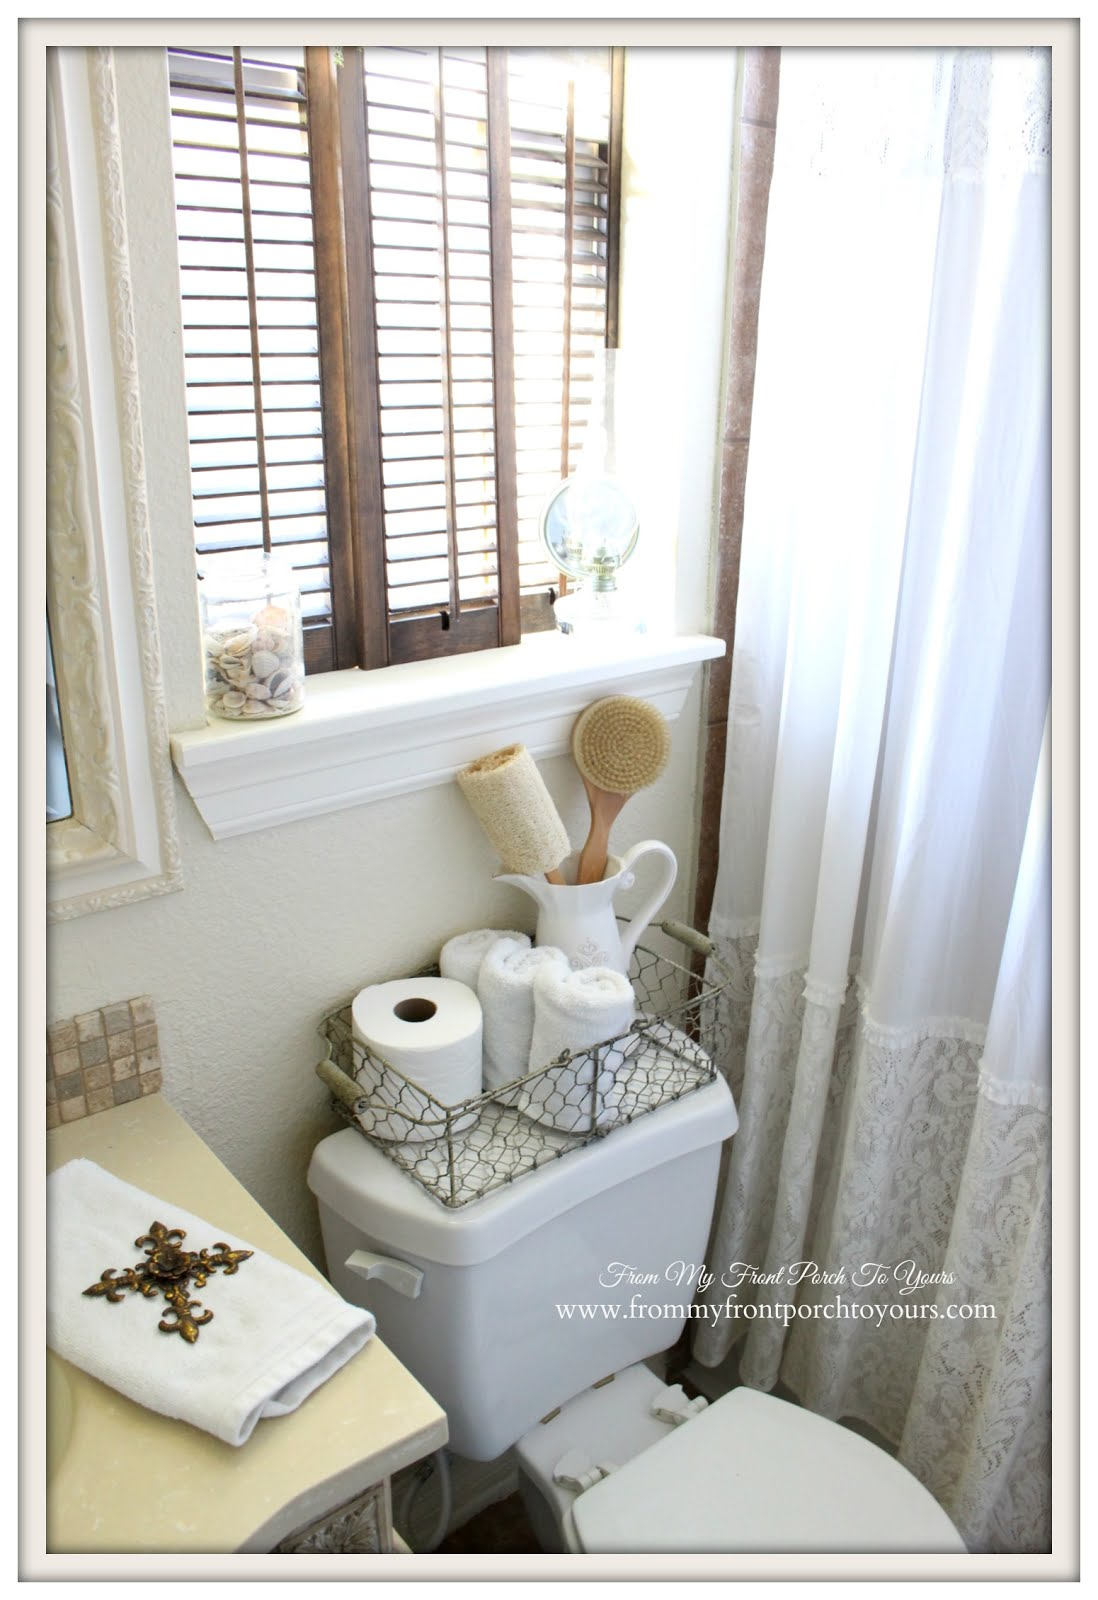 From My Front Porch To Yours Farmhouse Guest Bathroom